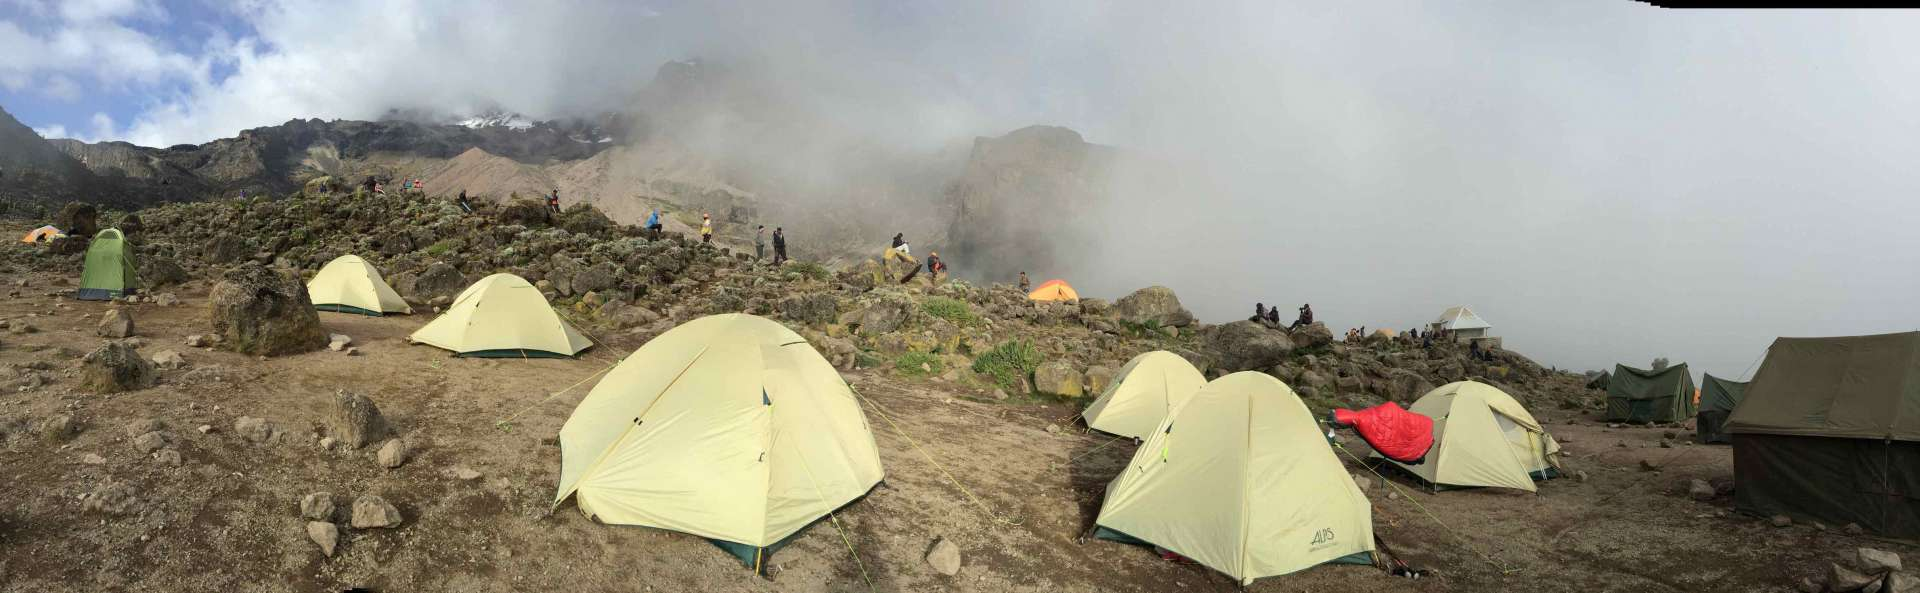 Barranco camp site, Machame route (Day 3)